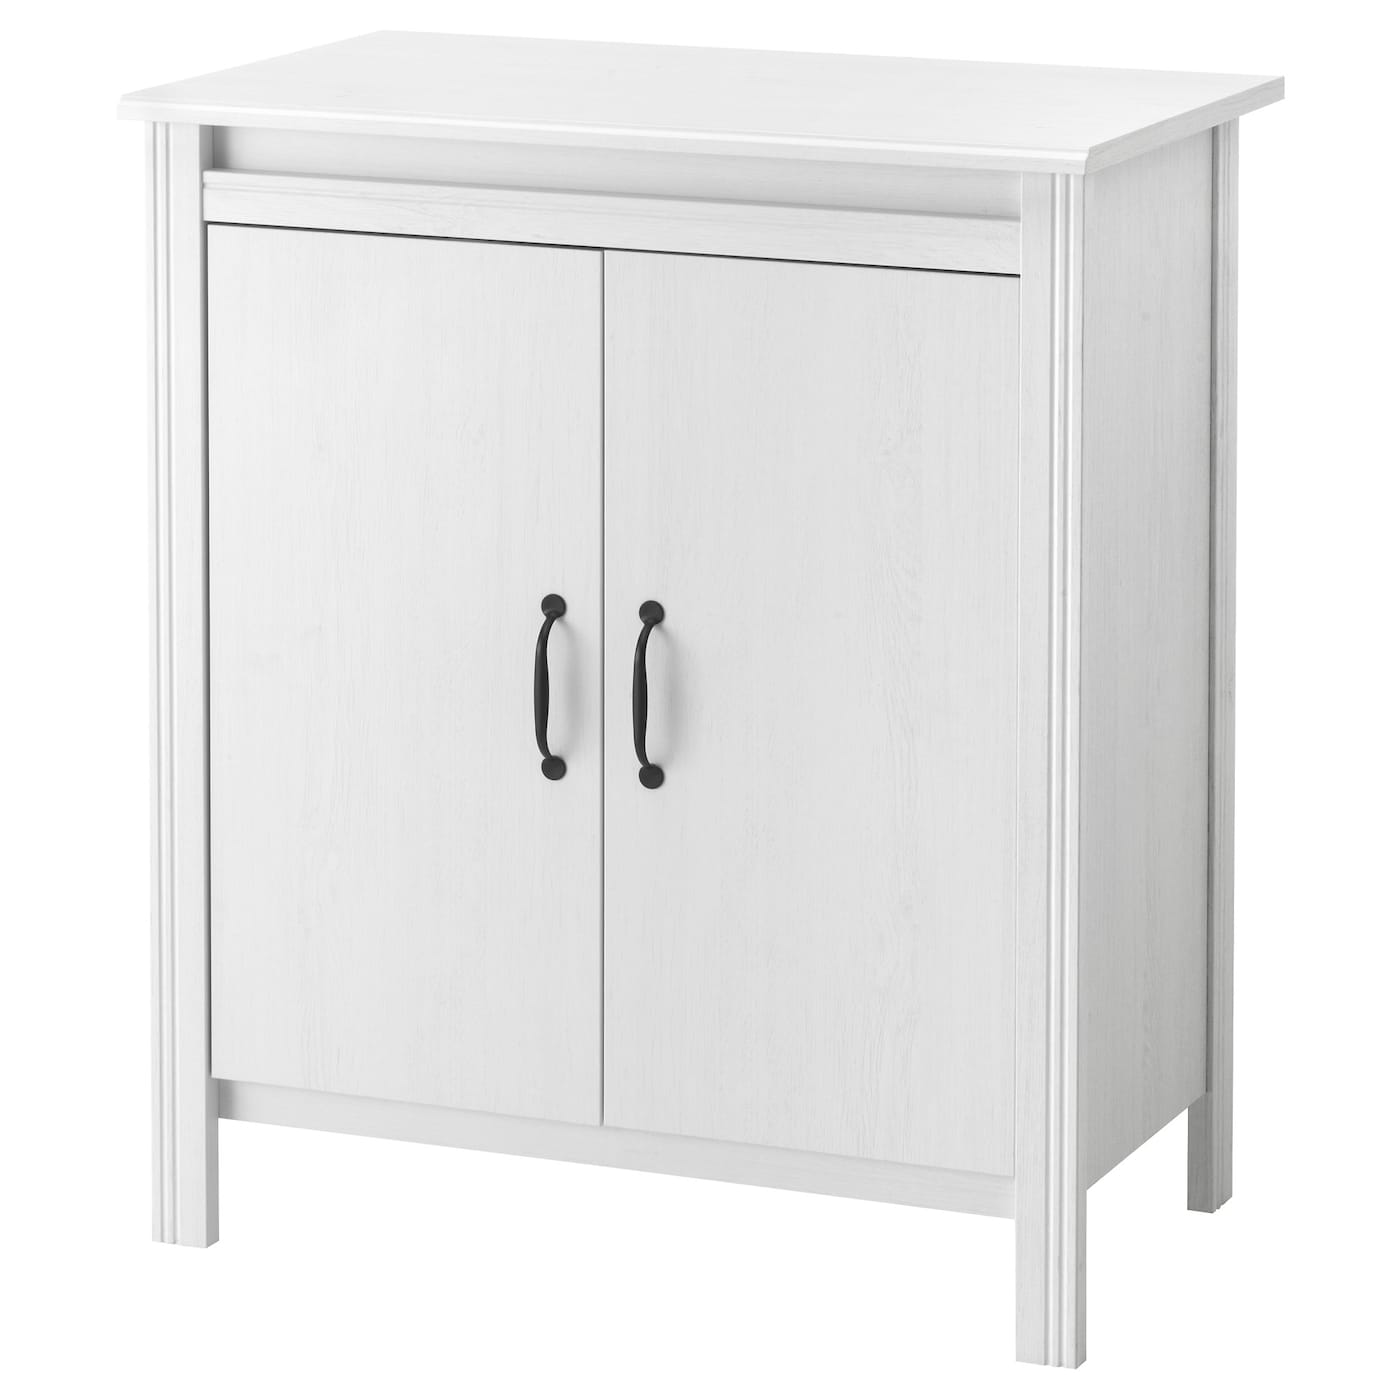 ikea storage cabinets brusali cabinet with doors white 80 x 93 cm ikea 29806